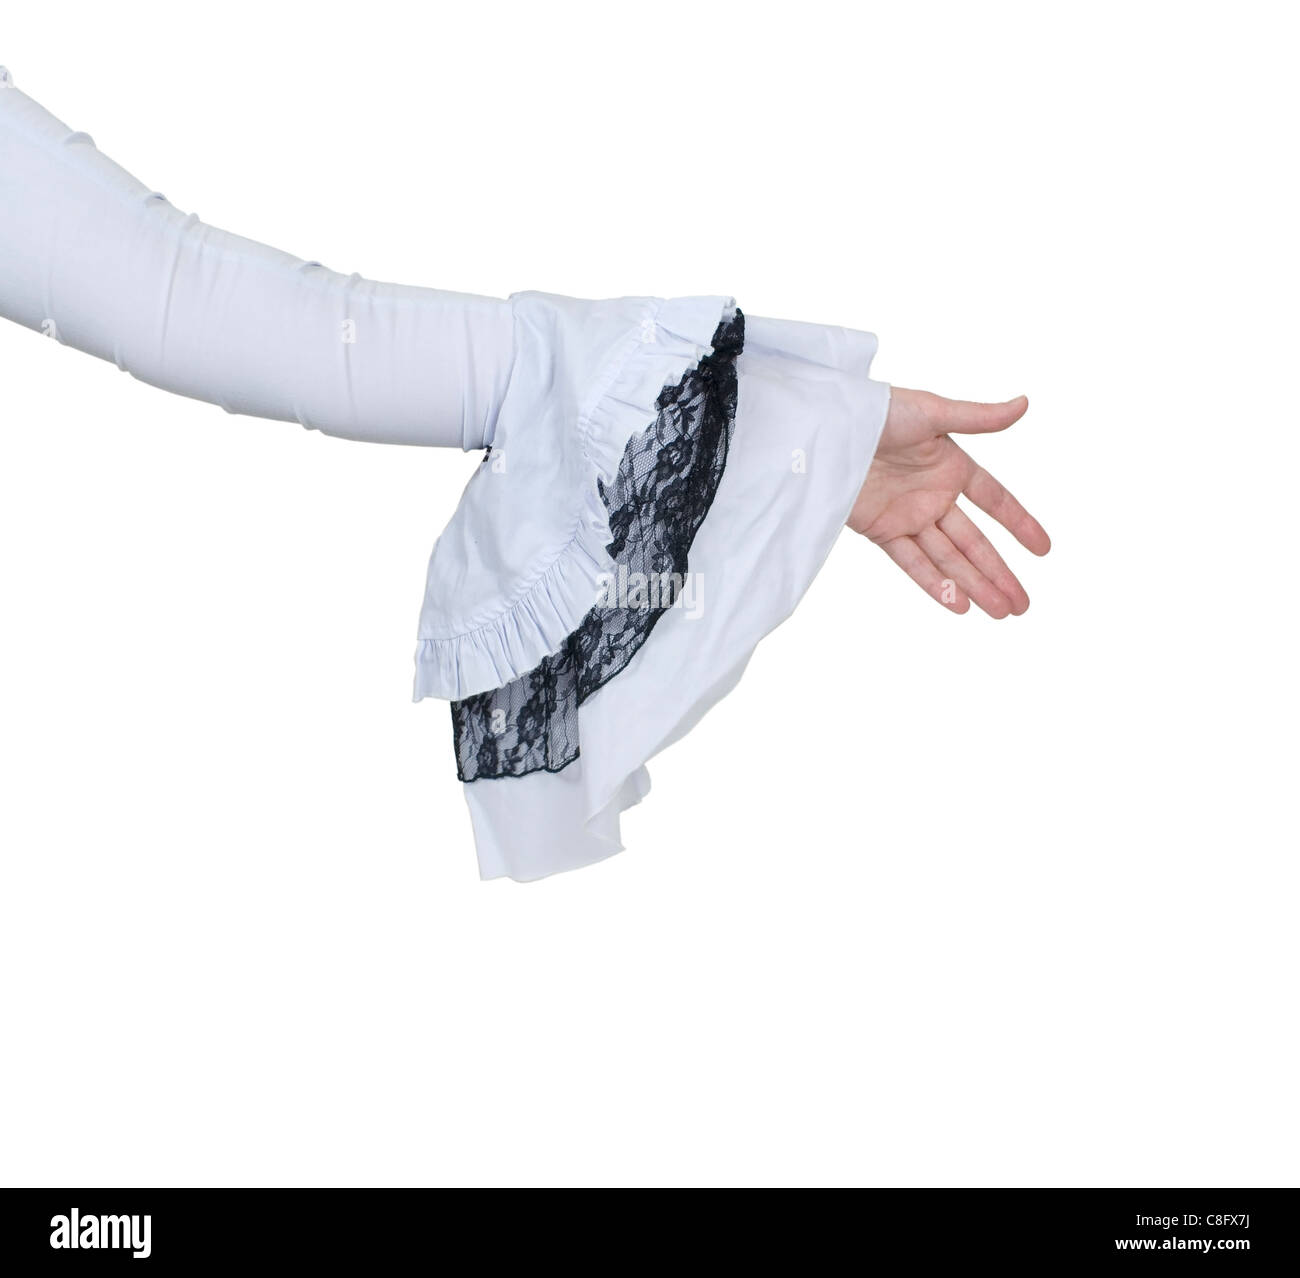 Extending a handshake wearing a delicate and feminine gothic white lace outfit - path included - Stock Image